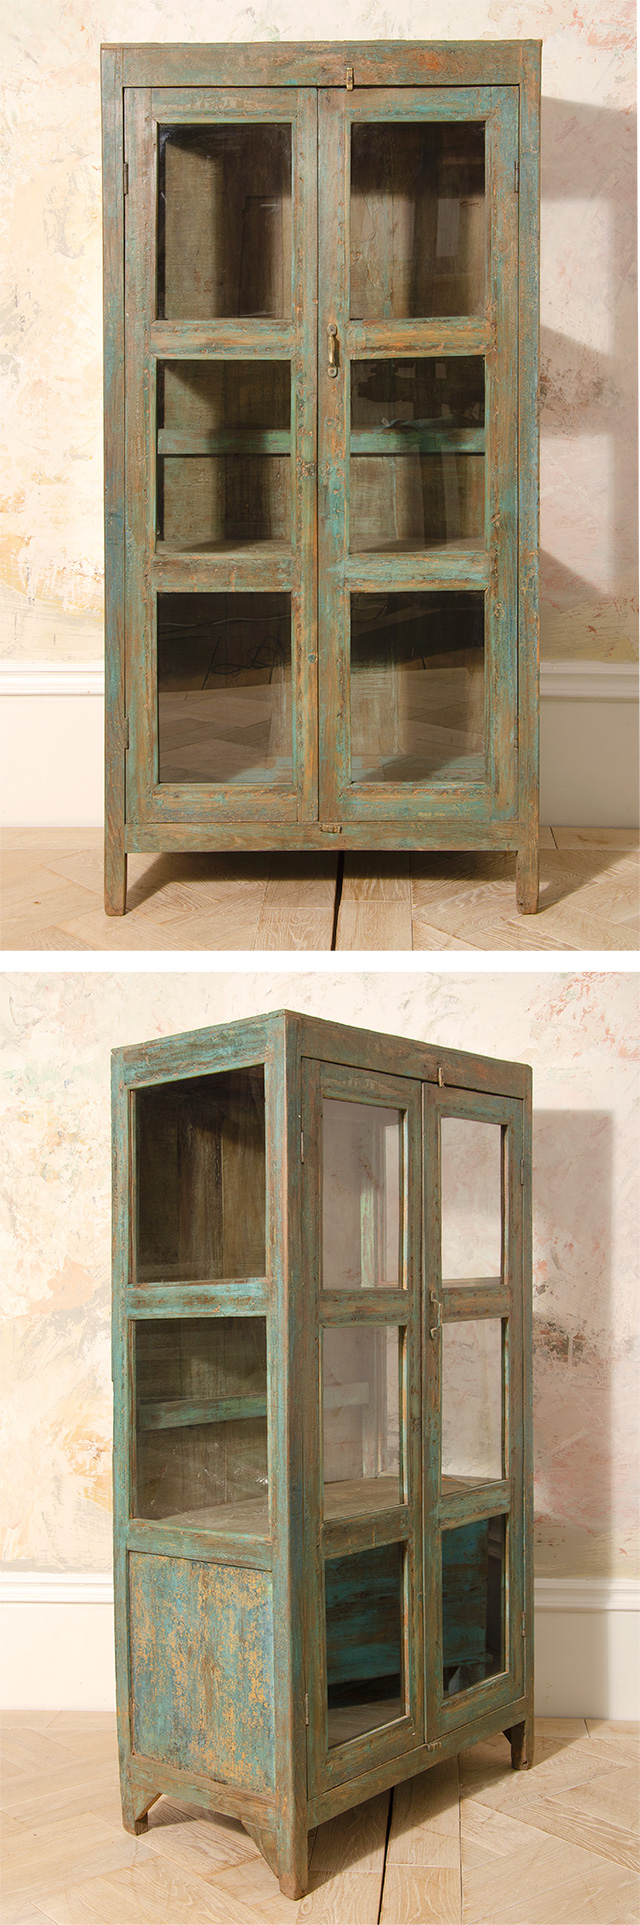 Antique painted almirah indian glass cabinet > Display ...